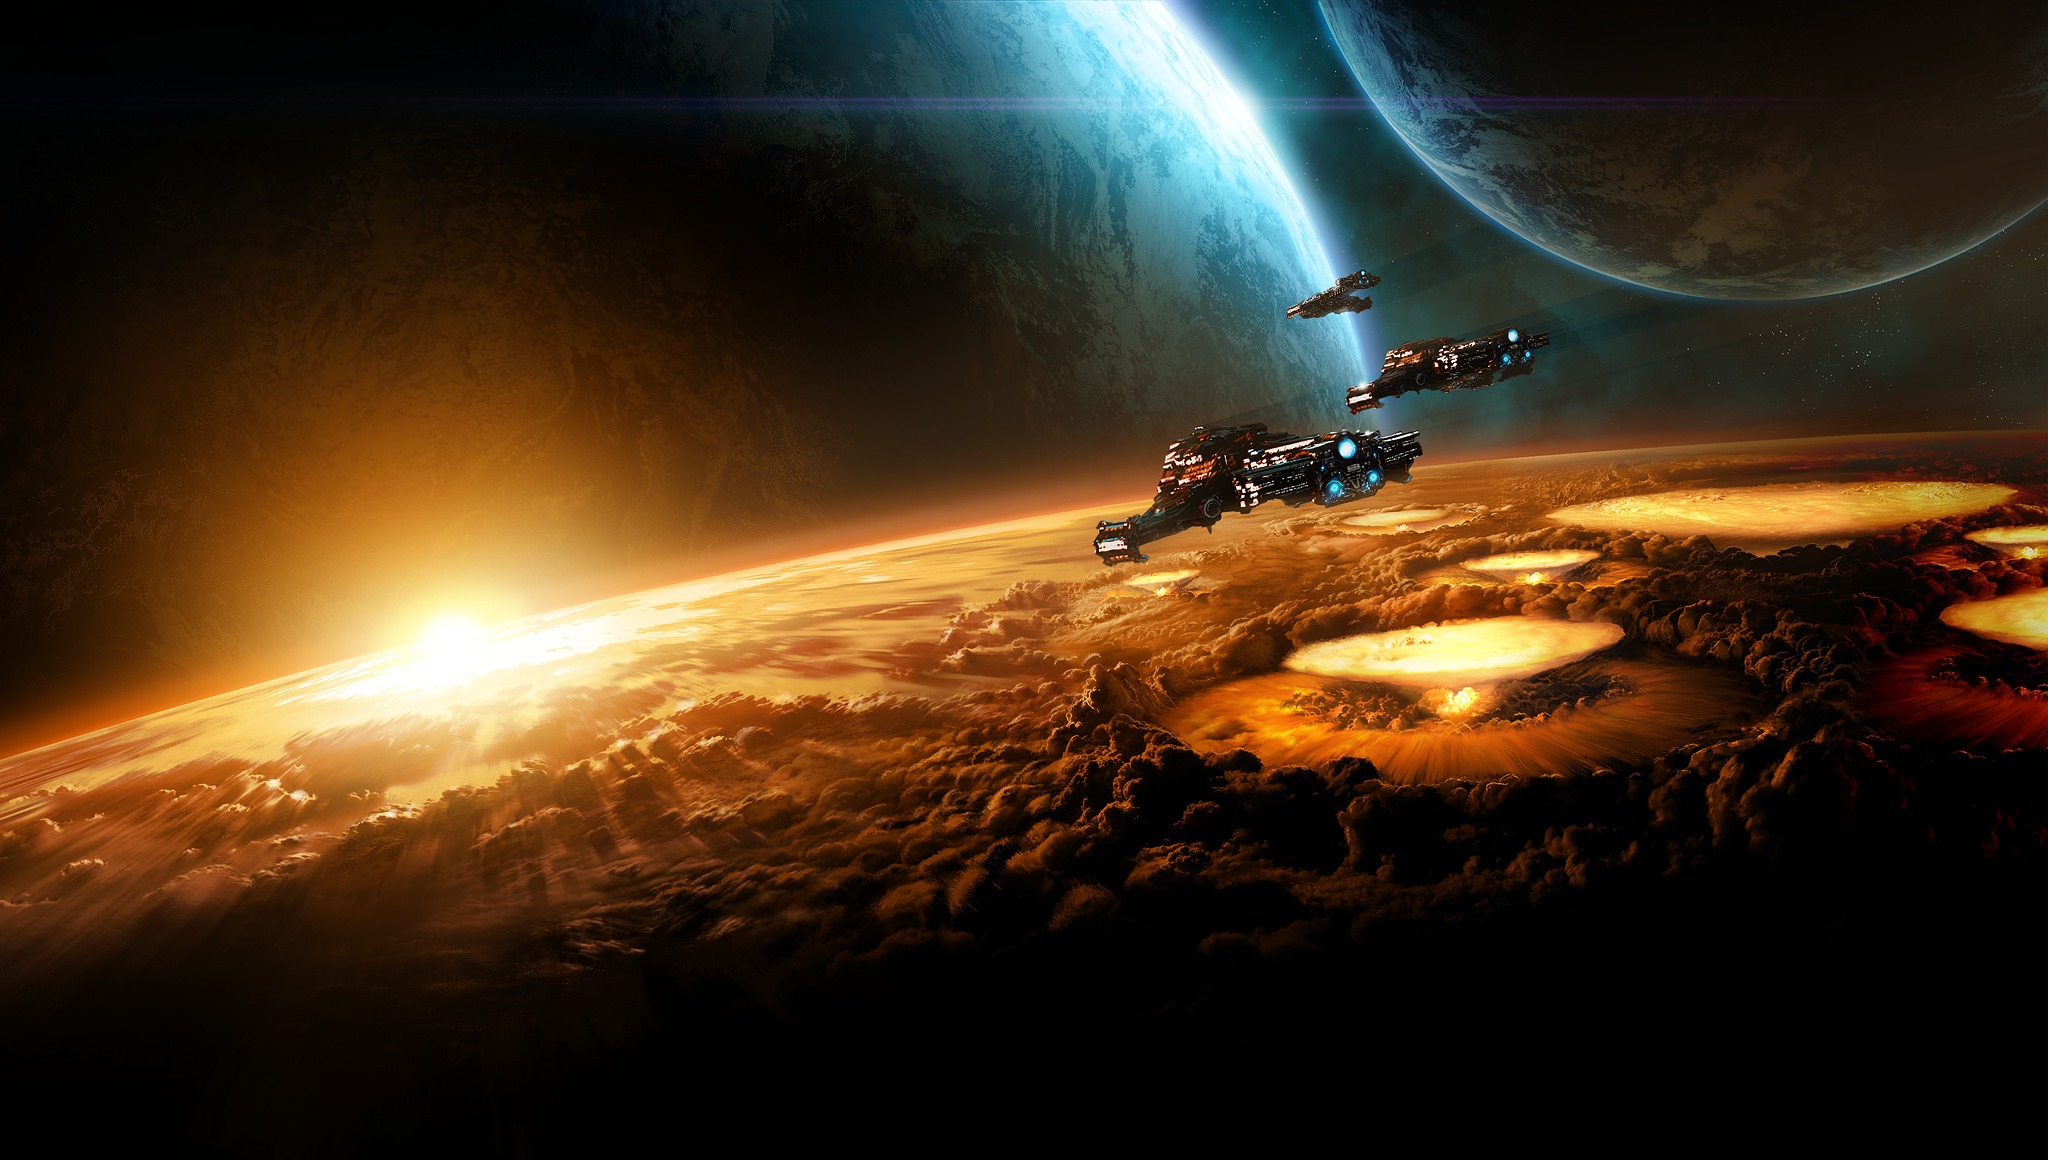 170 Starcraft HD Wallpapers Background Images 2048x1160